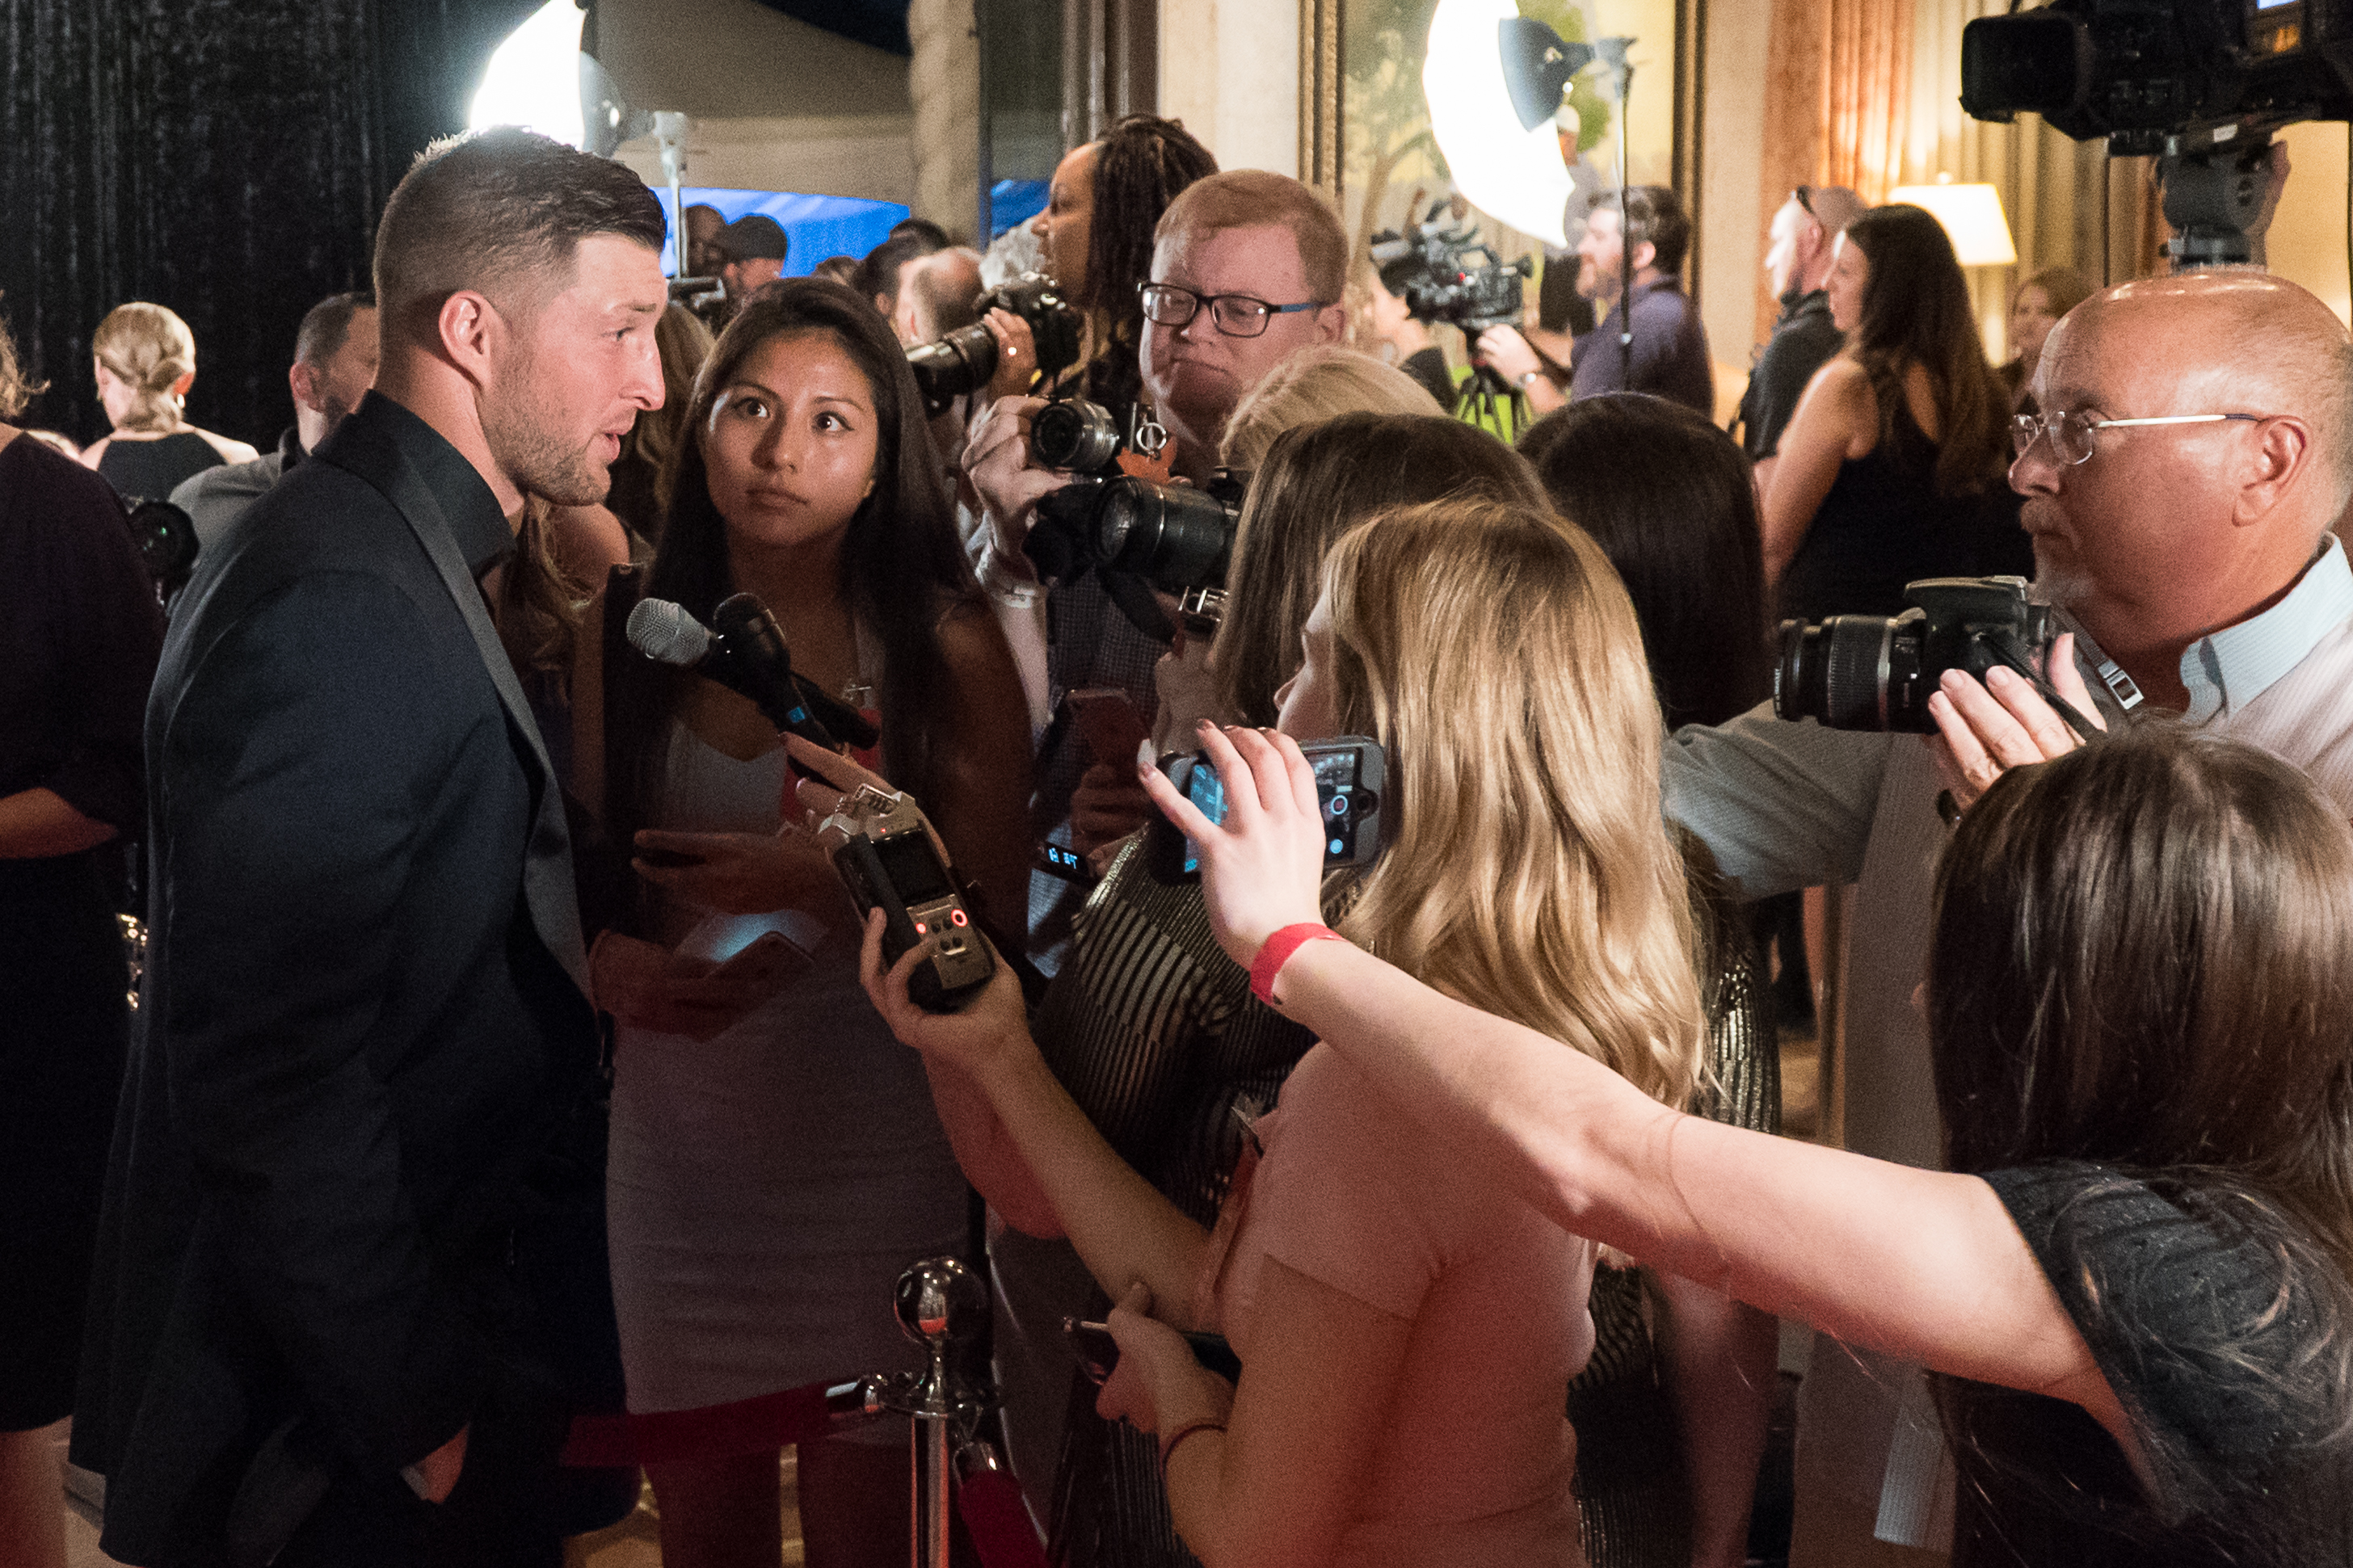 Tim_Tebow_speaks_to_the_media_along_the_red_carpet.jpg